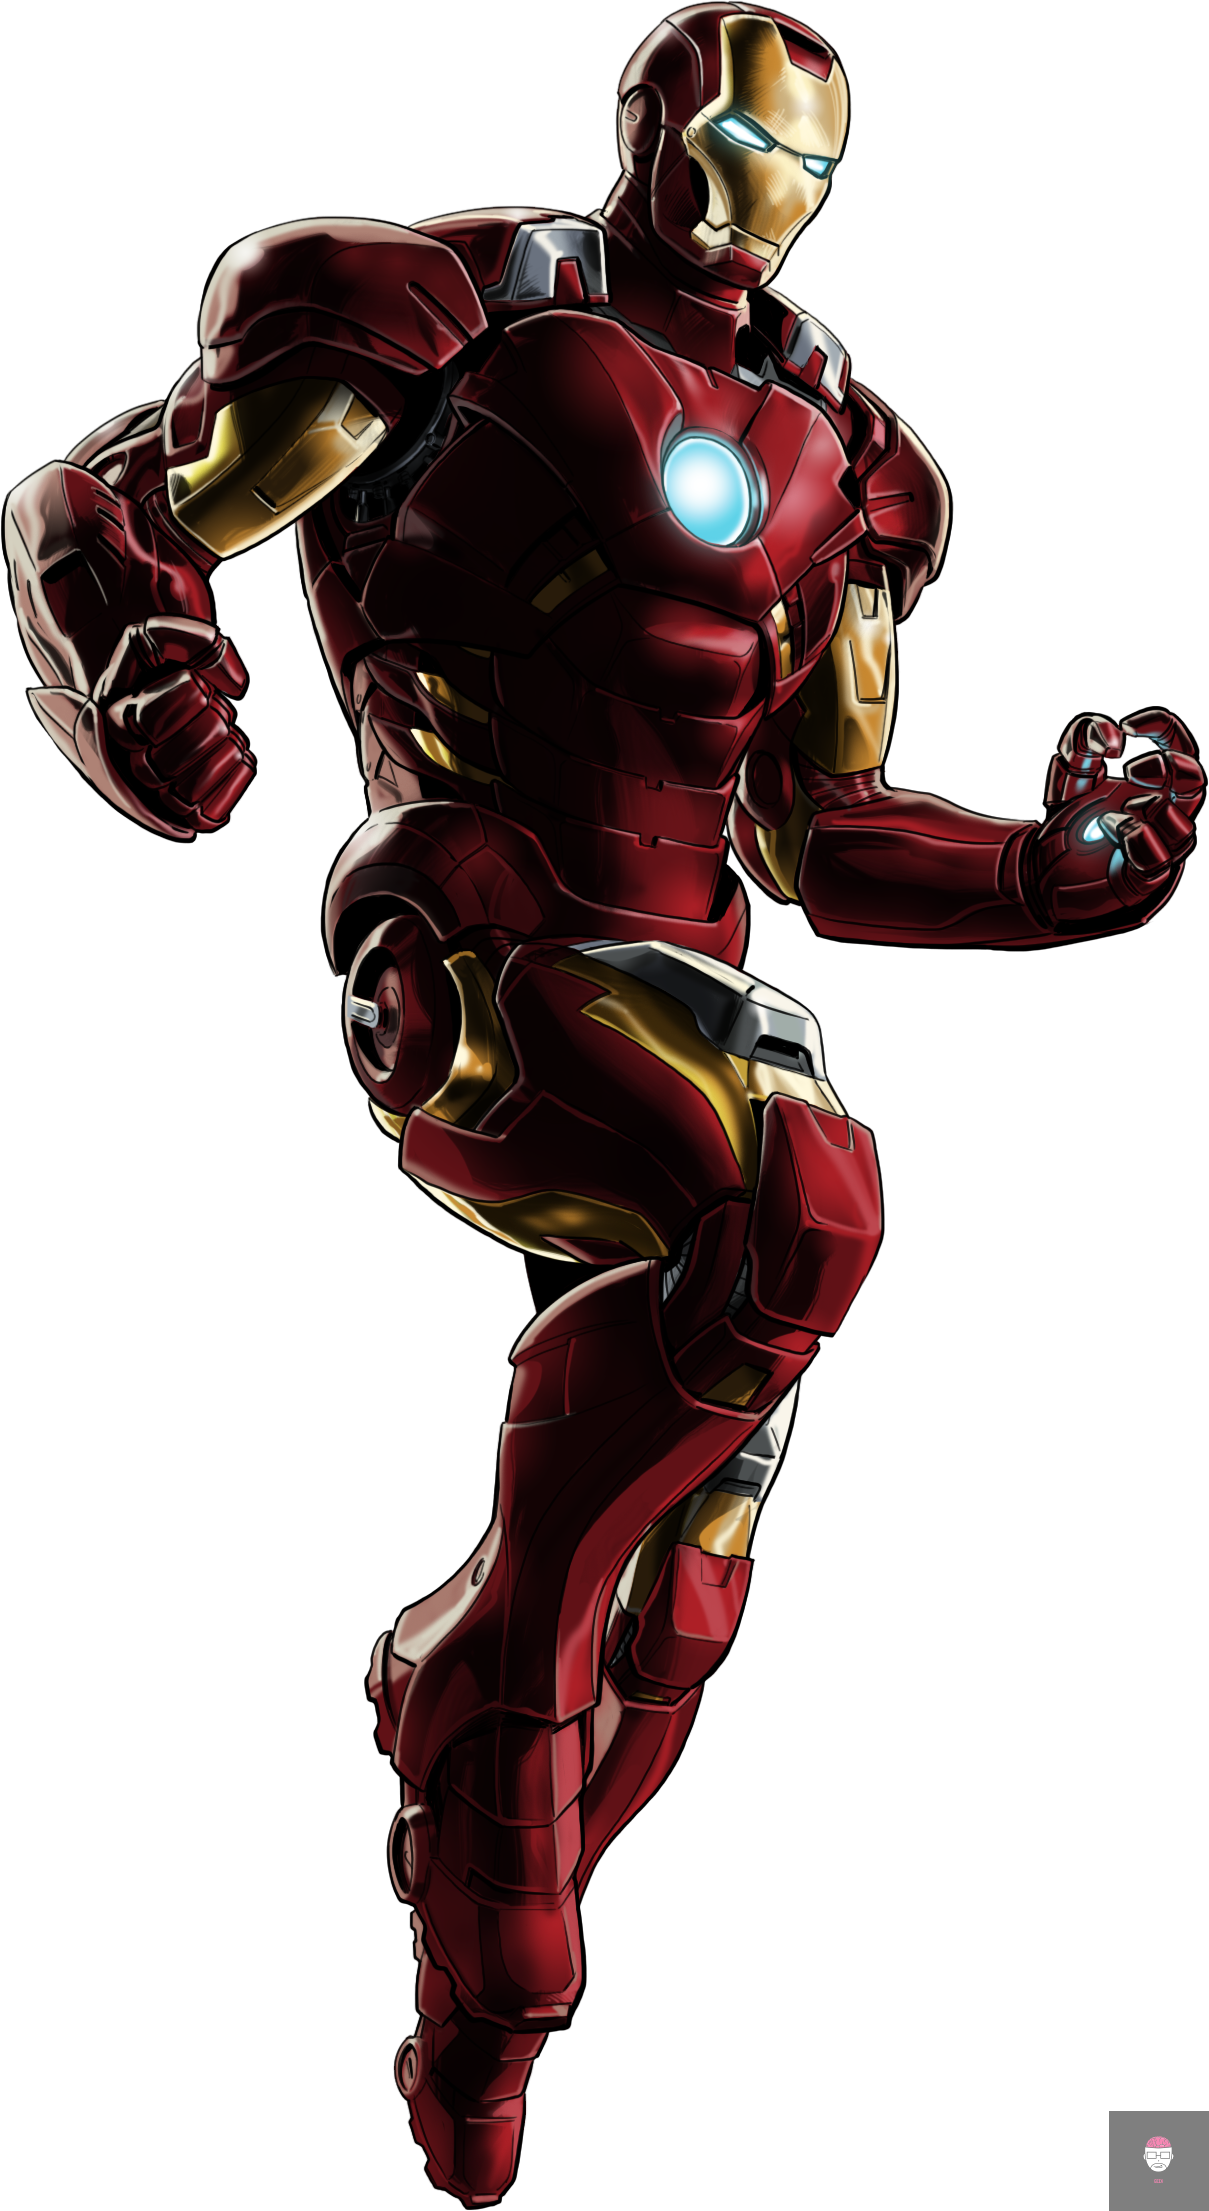 mon super h ros moi 1 mon iron man moi braindegeek. Black Bedroom Furniture Sets. Home Design Ideas